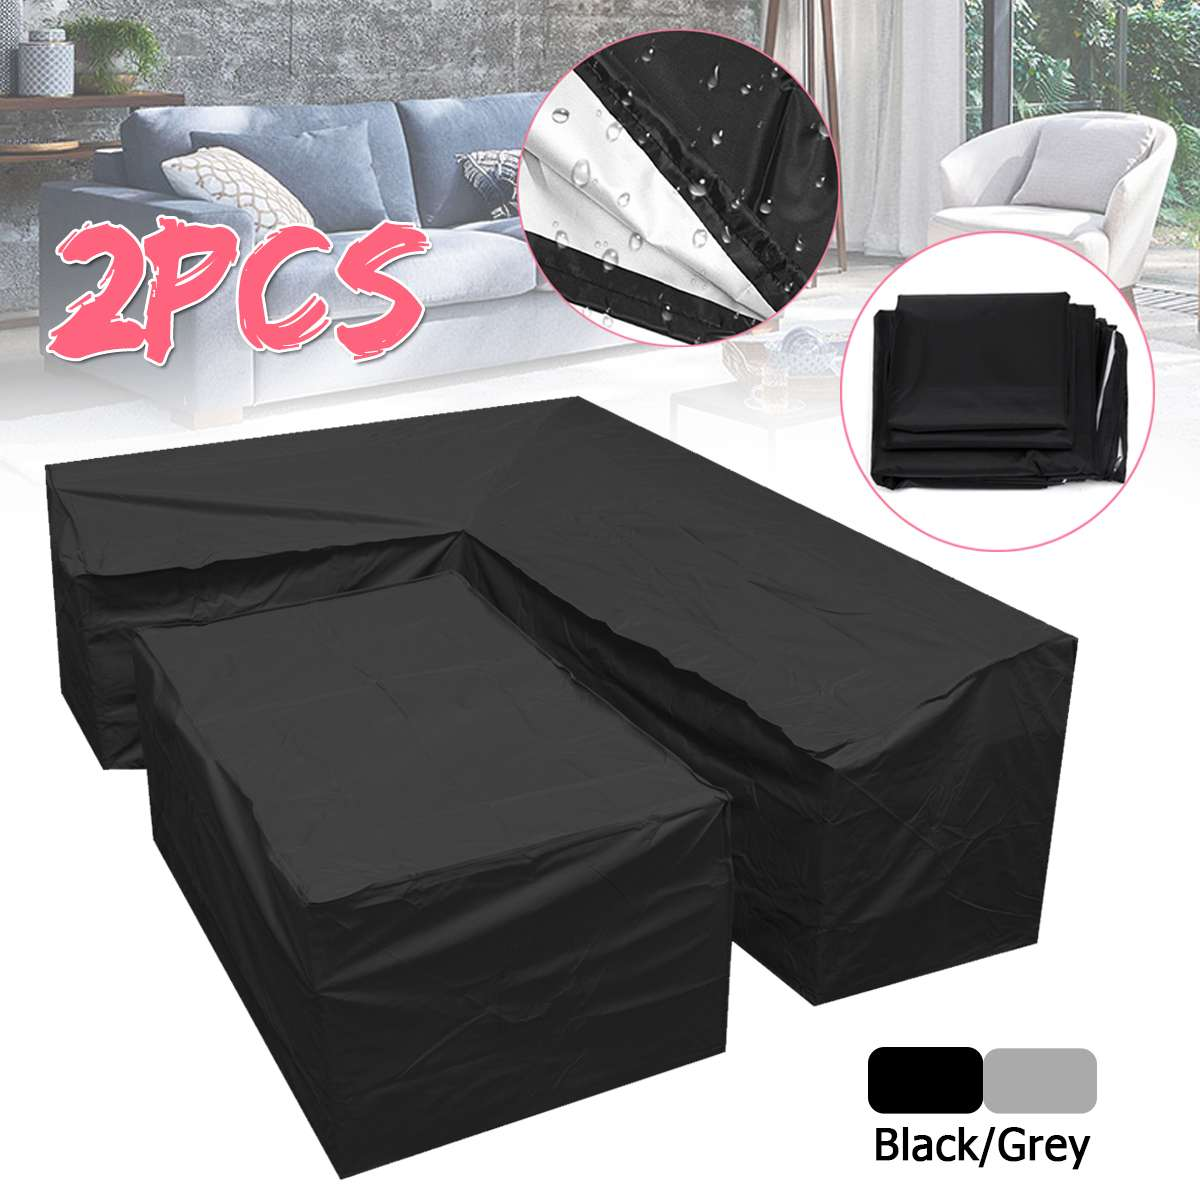 Astonishing L Shape Dustproof Furniture Cover Waterproof Outdoor Sectional Rain Dust Cover Wicker Corner Sofa Couch Covers All Purpose Cover Theyellowbook Wood Chair Design Ideas Theyellowbookinfo